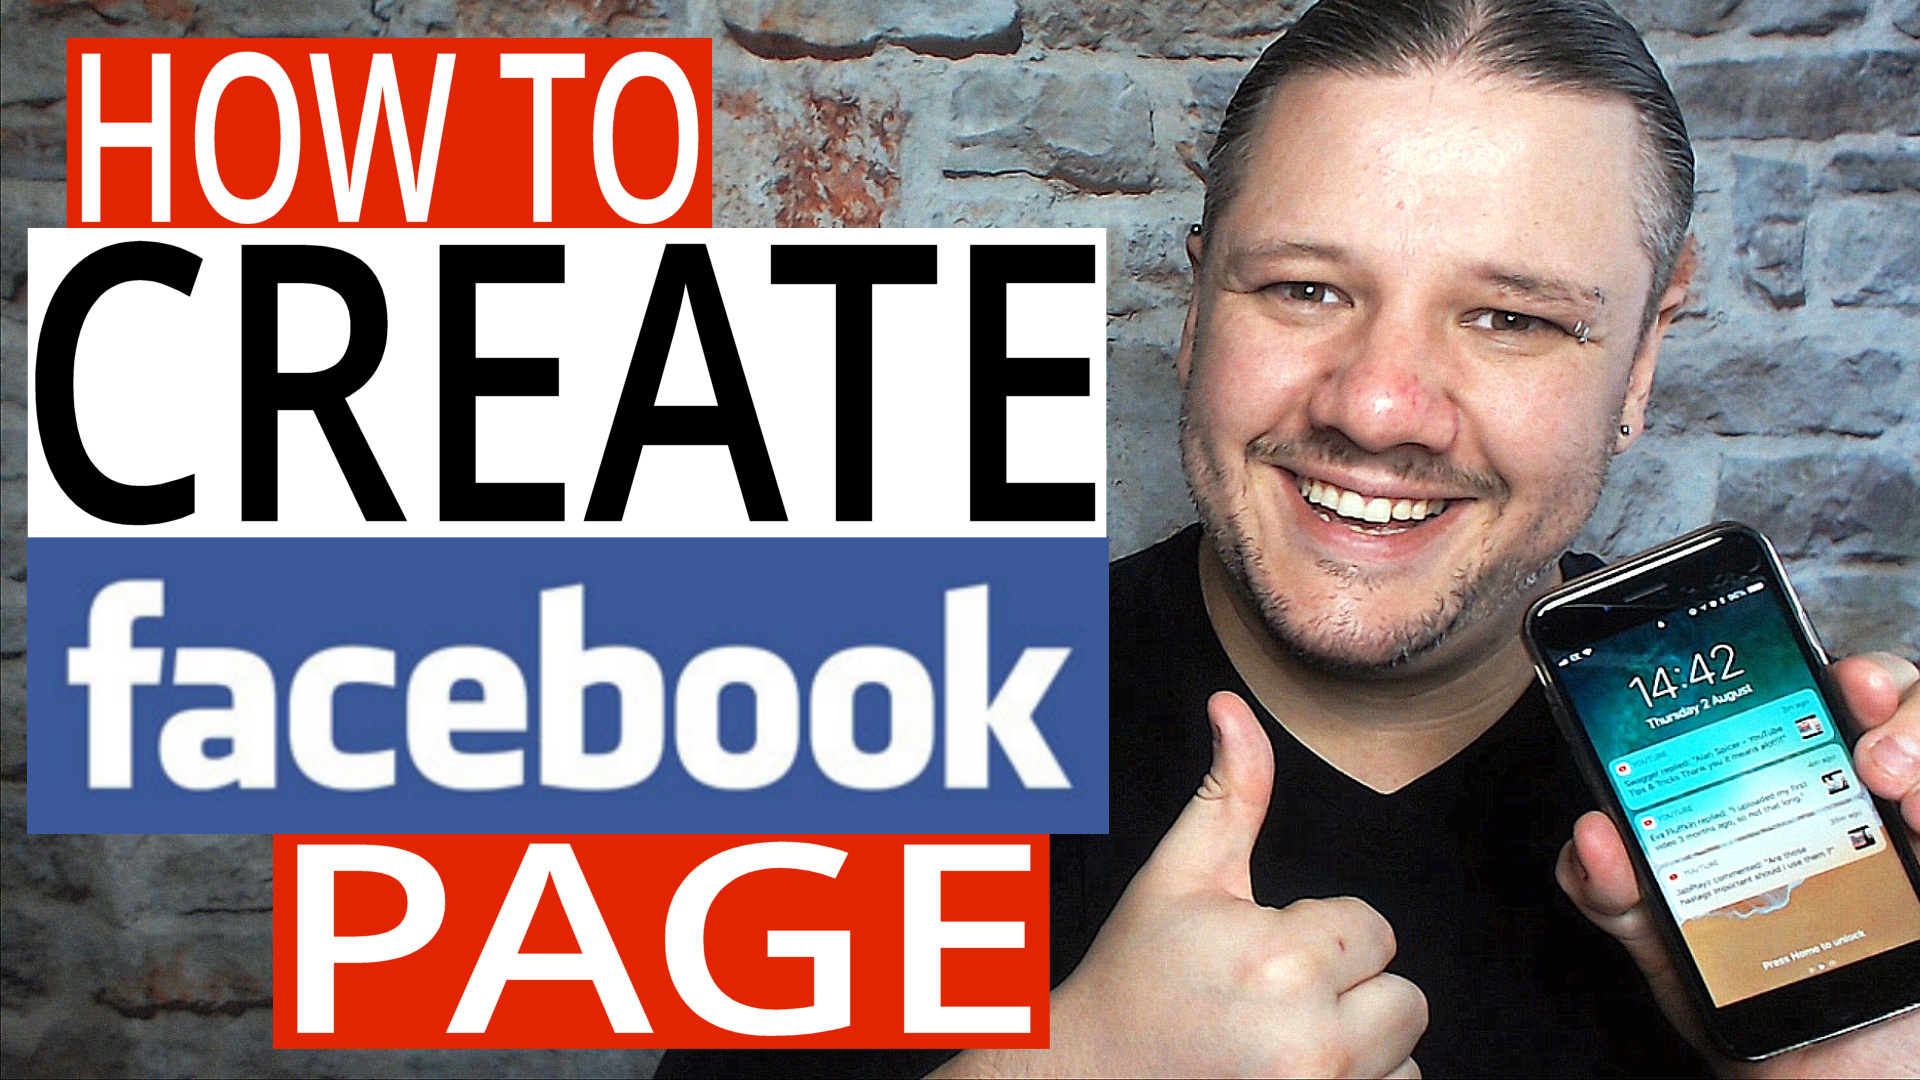 alan spicer,alanspicer,create a facebook page,how to create a facebook business page,how to create a facebook page,how to make a facebook page,setup facebook business page,create facebook page,how to create a facebook business page 2018,create facebook business page,how to create a facebook page for your business,create fan page,fb fan page,creating a facebook page,how to create a facebook fan page,how to make a facebook business page,how to create facebook page